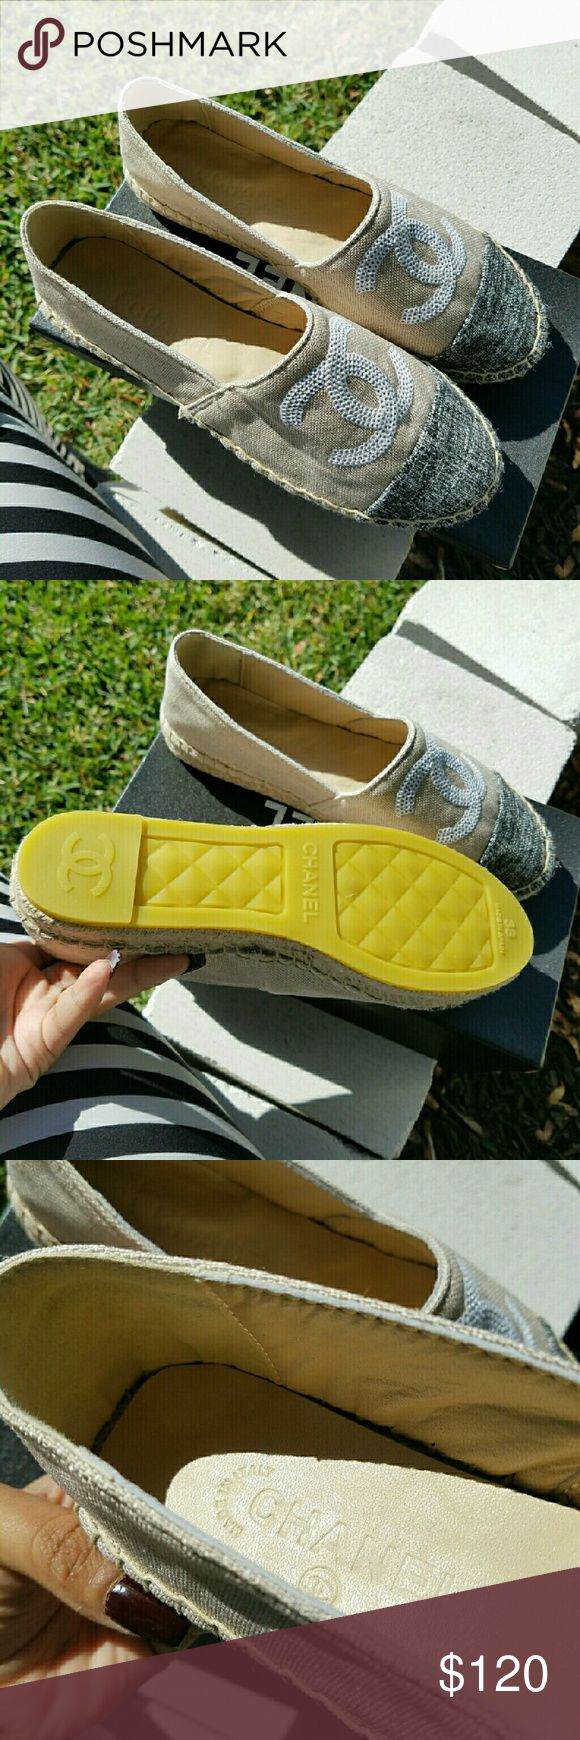 Chanel Espadrilles Brand new PRICE REFLECTS AUTHENTICITY CHANEL Shoes